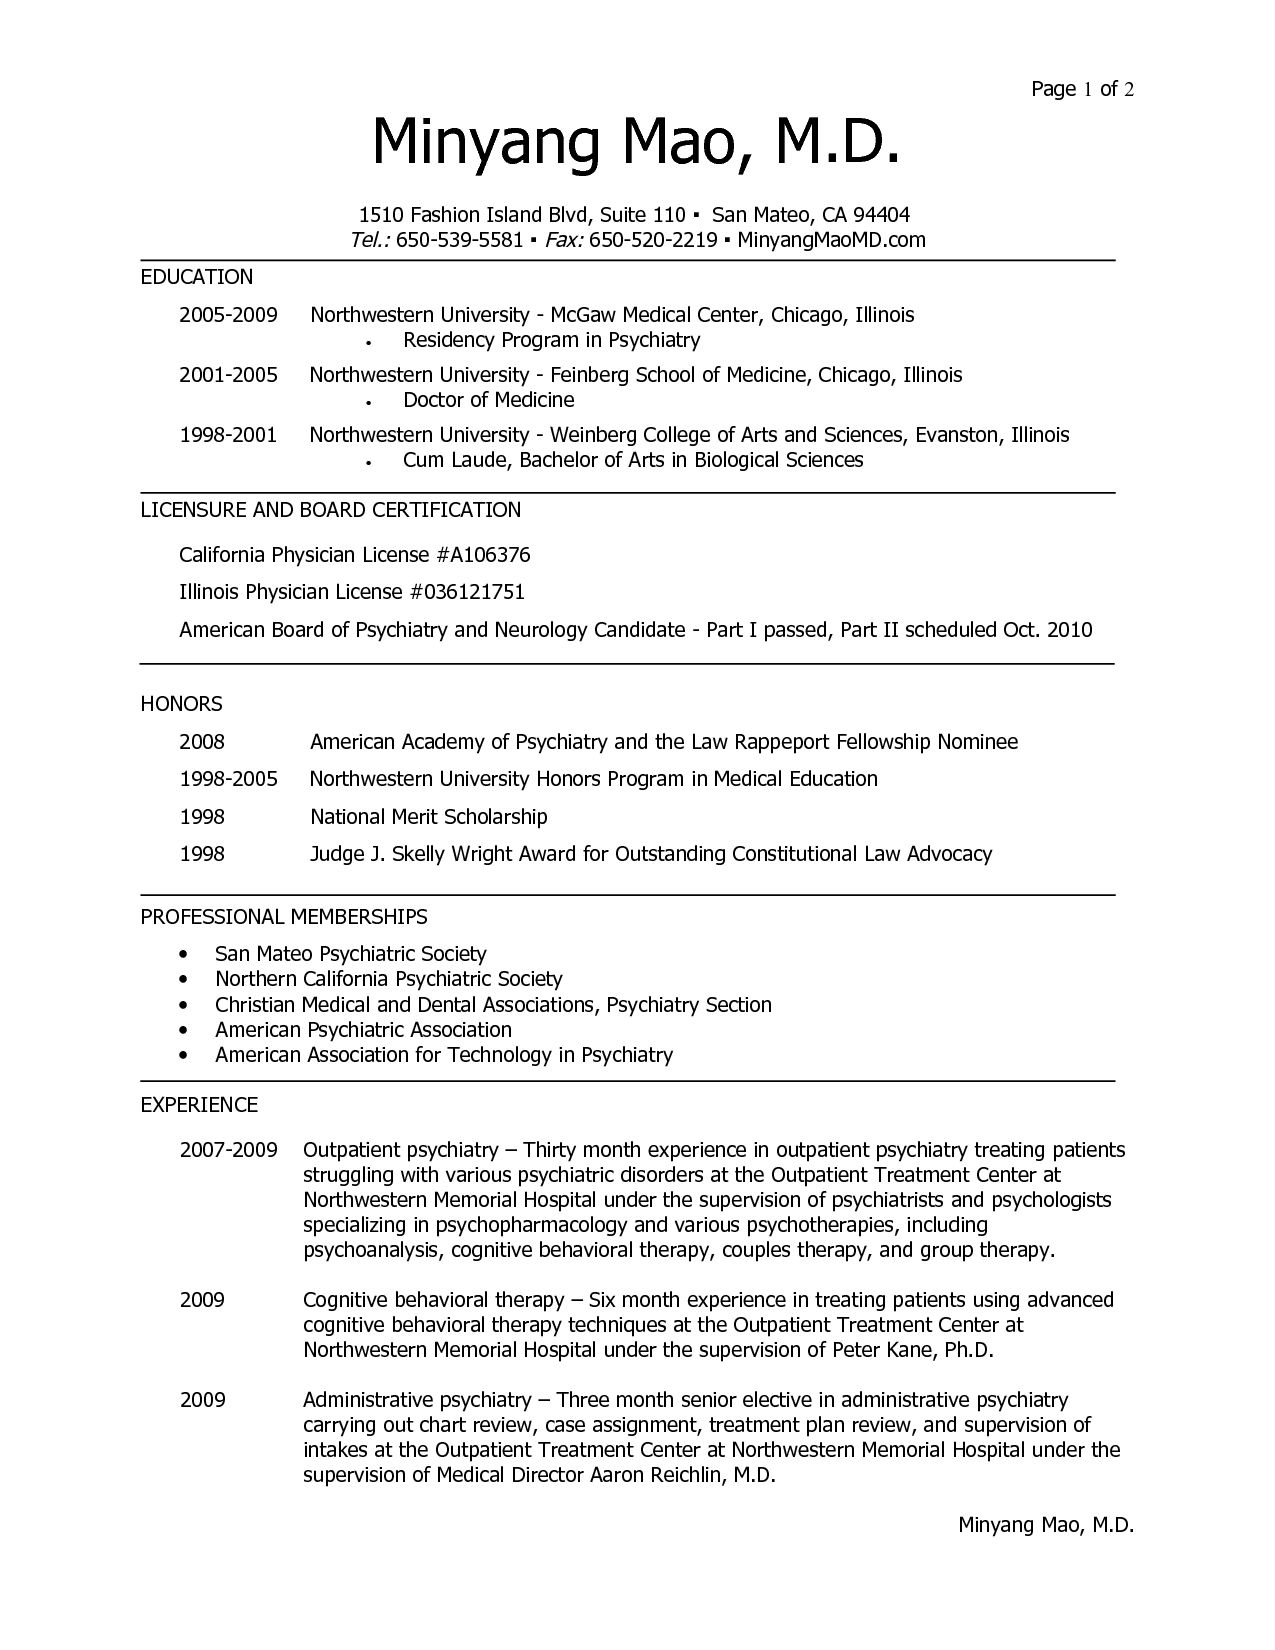 medical school resume template medical school resume